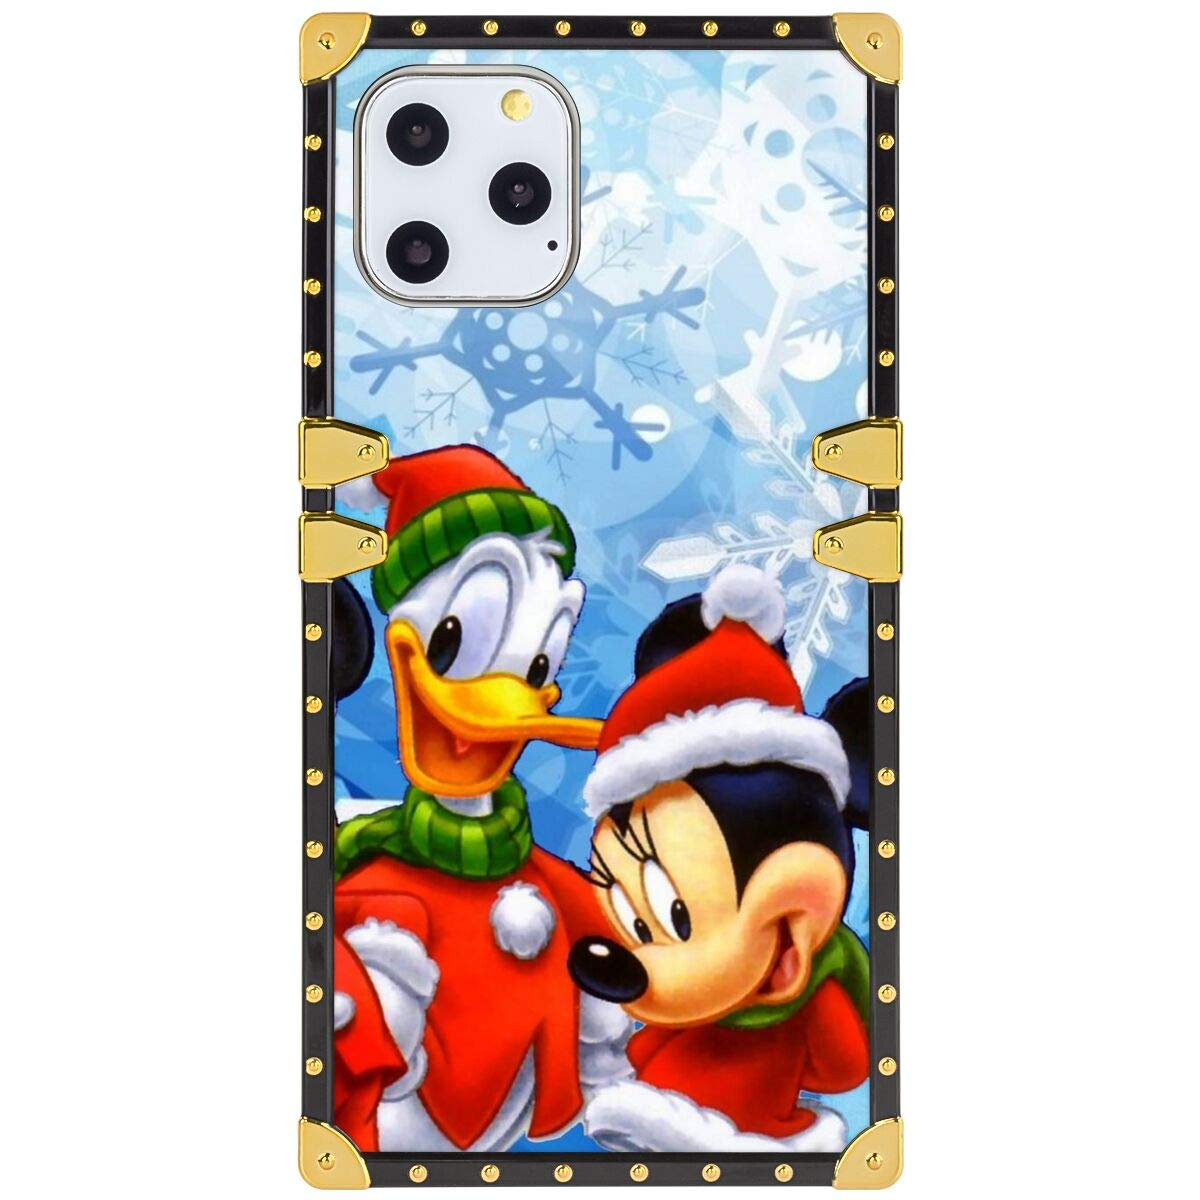 DISNEY COLLECTION Square Phone Shell Case Fit for iPhone 11 Pro Max 6.5inch Miki Mouse Snowflake Winter Xmas